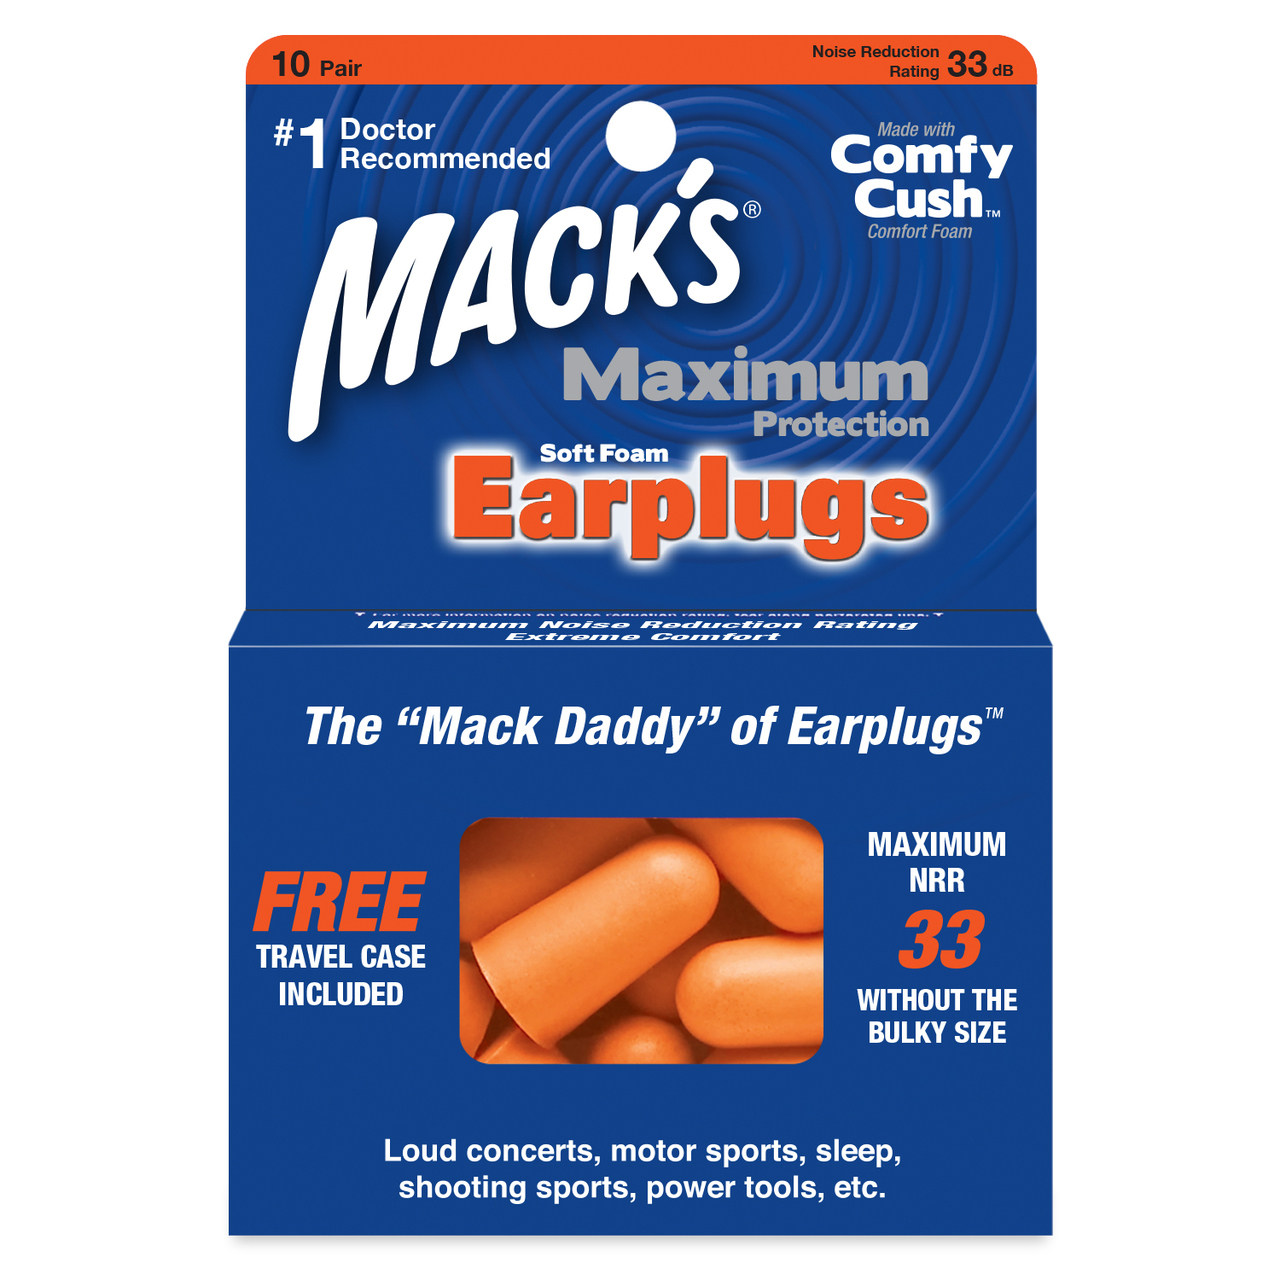 Mack's Maximum Protection Soft Foam Ear Plugs